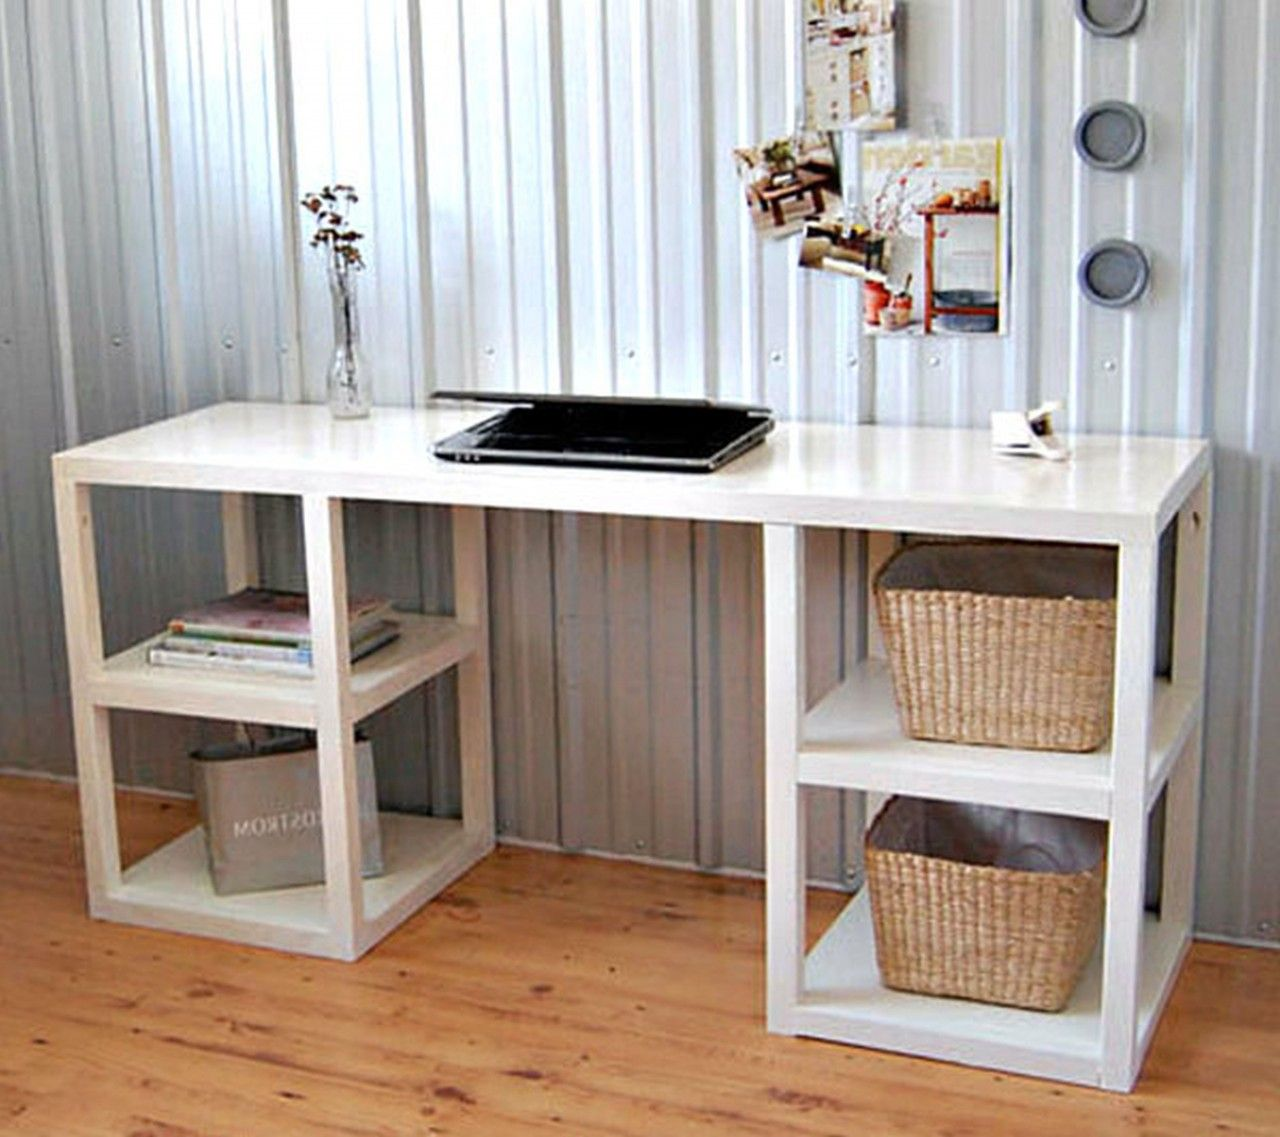 Endearing two person desk home office build magnificent home office elegant diy desk parsons style great home office decoration stunning home office living room ideas industrial style elegant diy desk parsons style great solutioingenieria Images